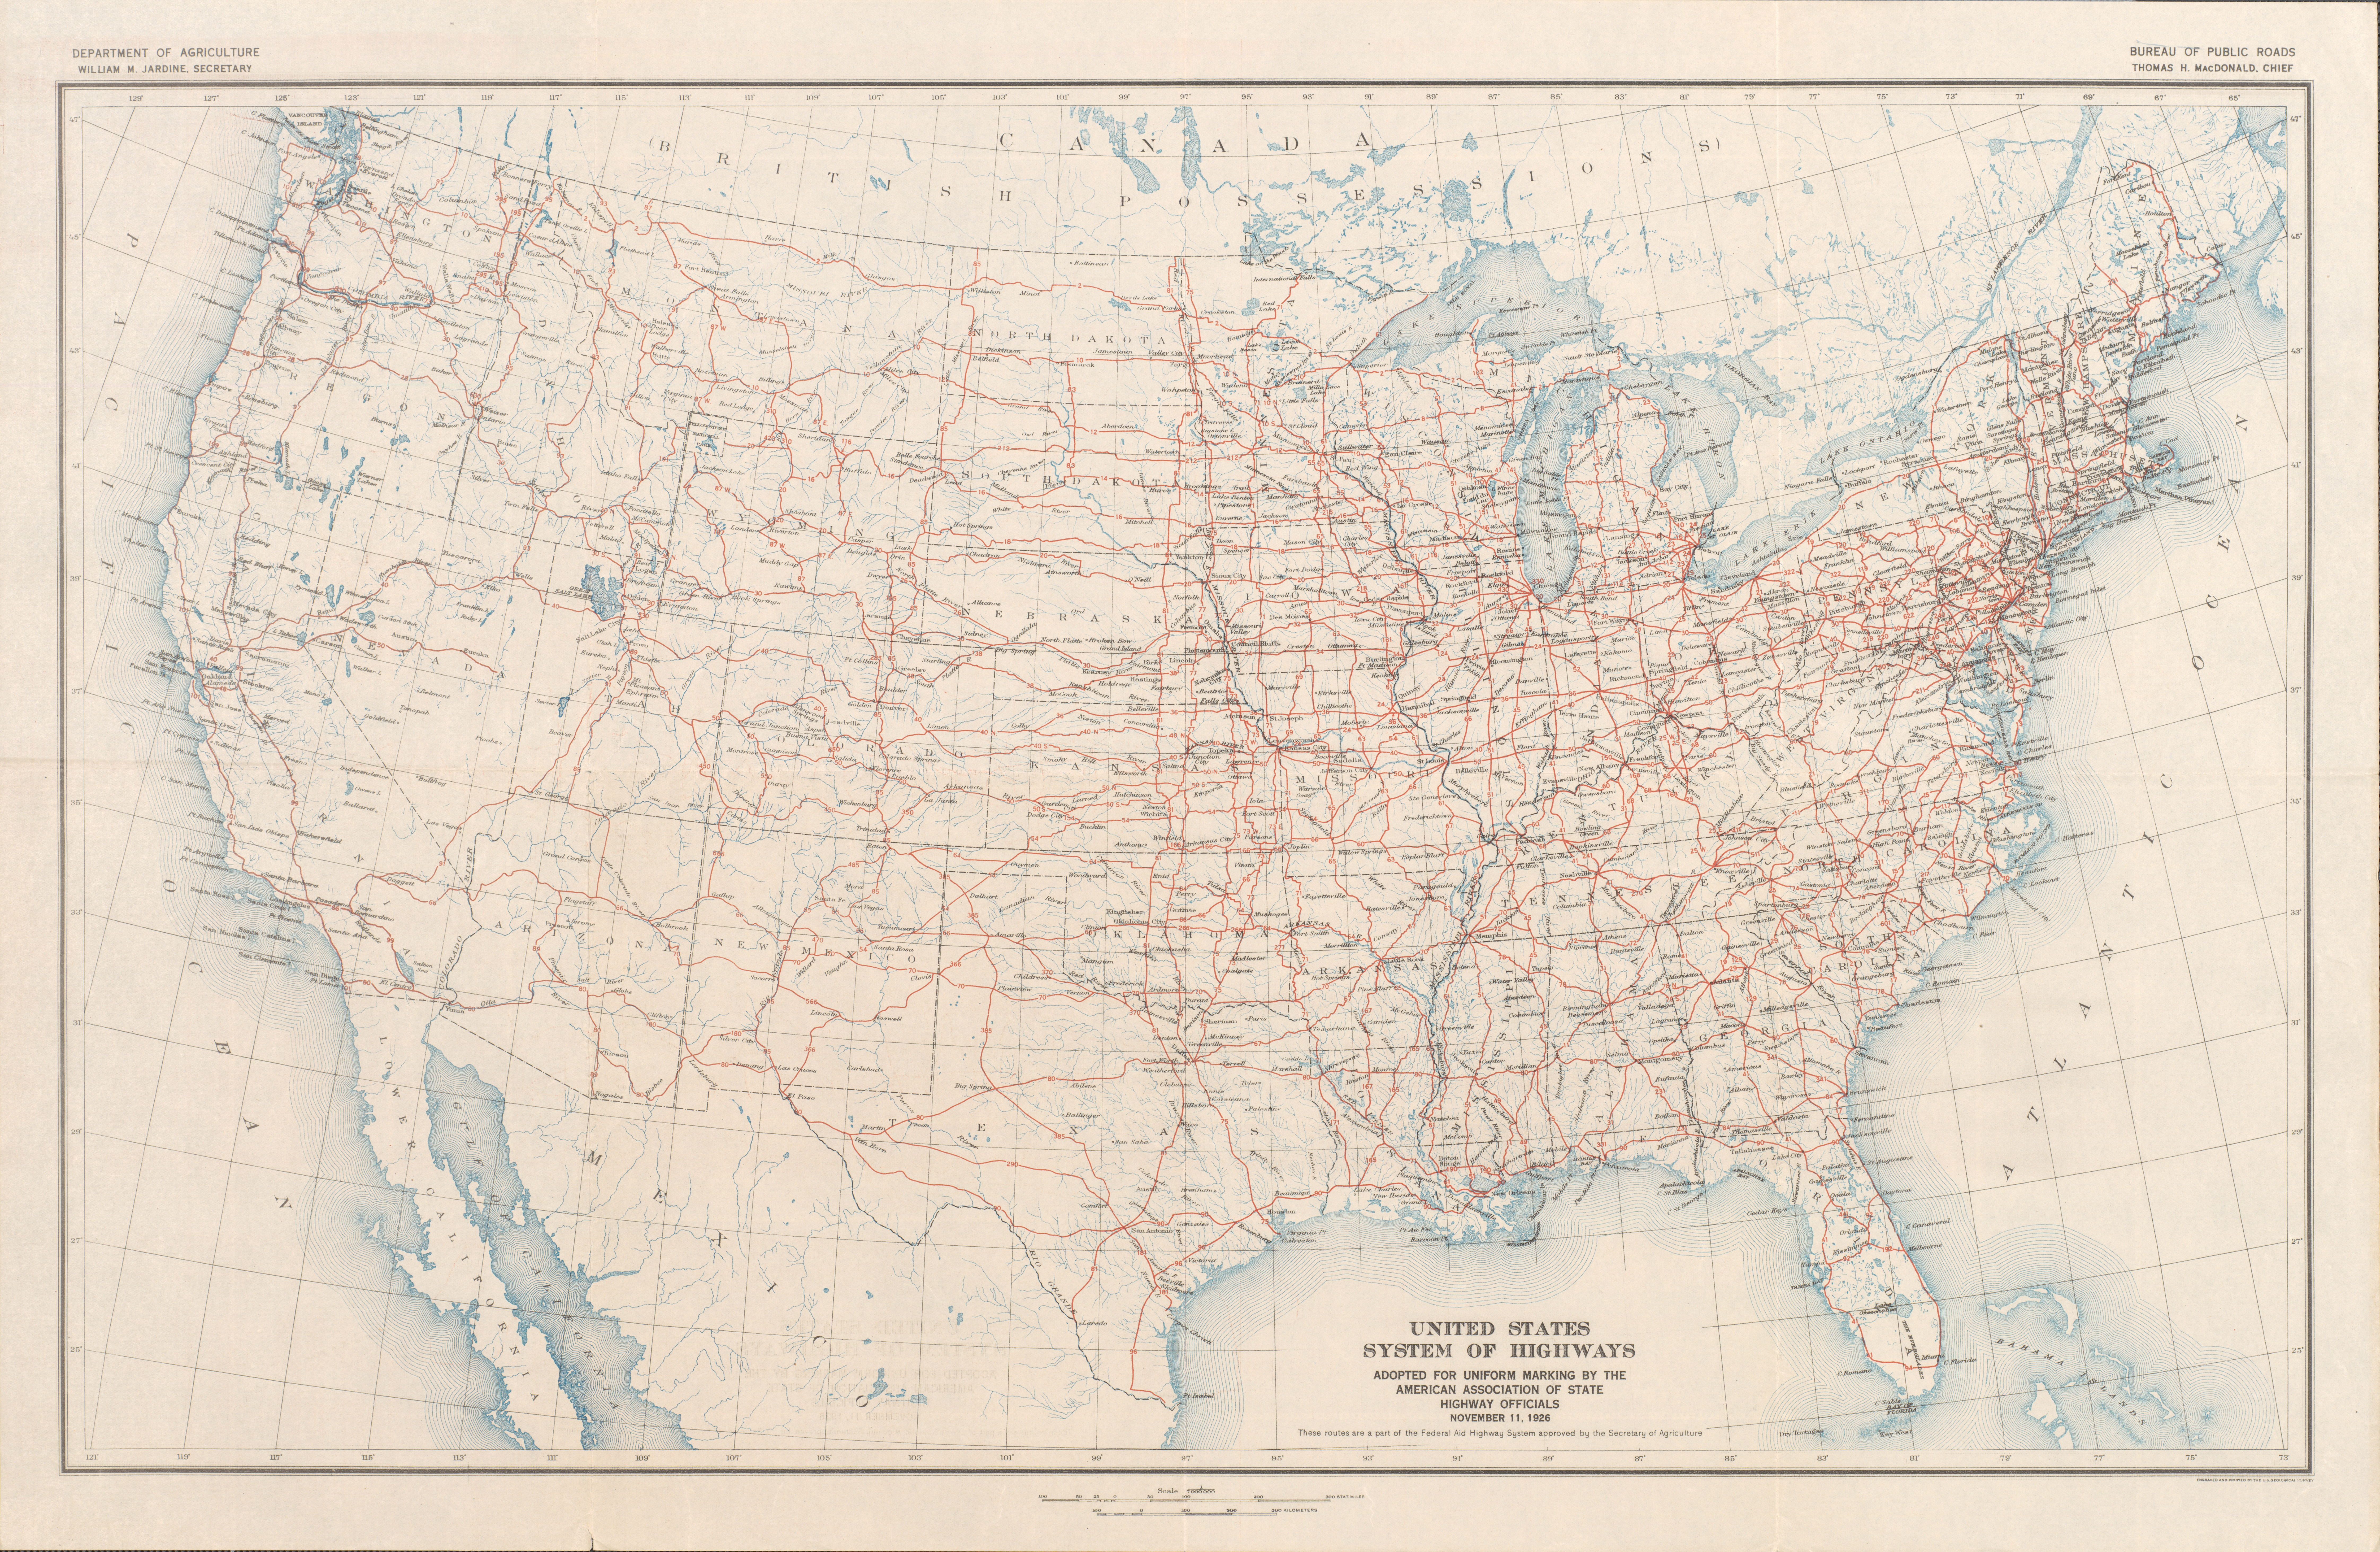 Interstate  Wikipedia United States Numbered Highway System - Map usa states highways